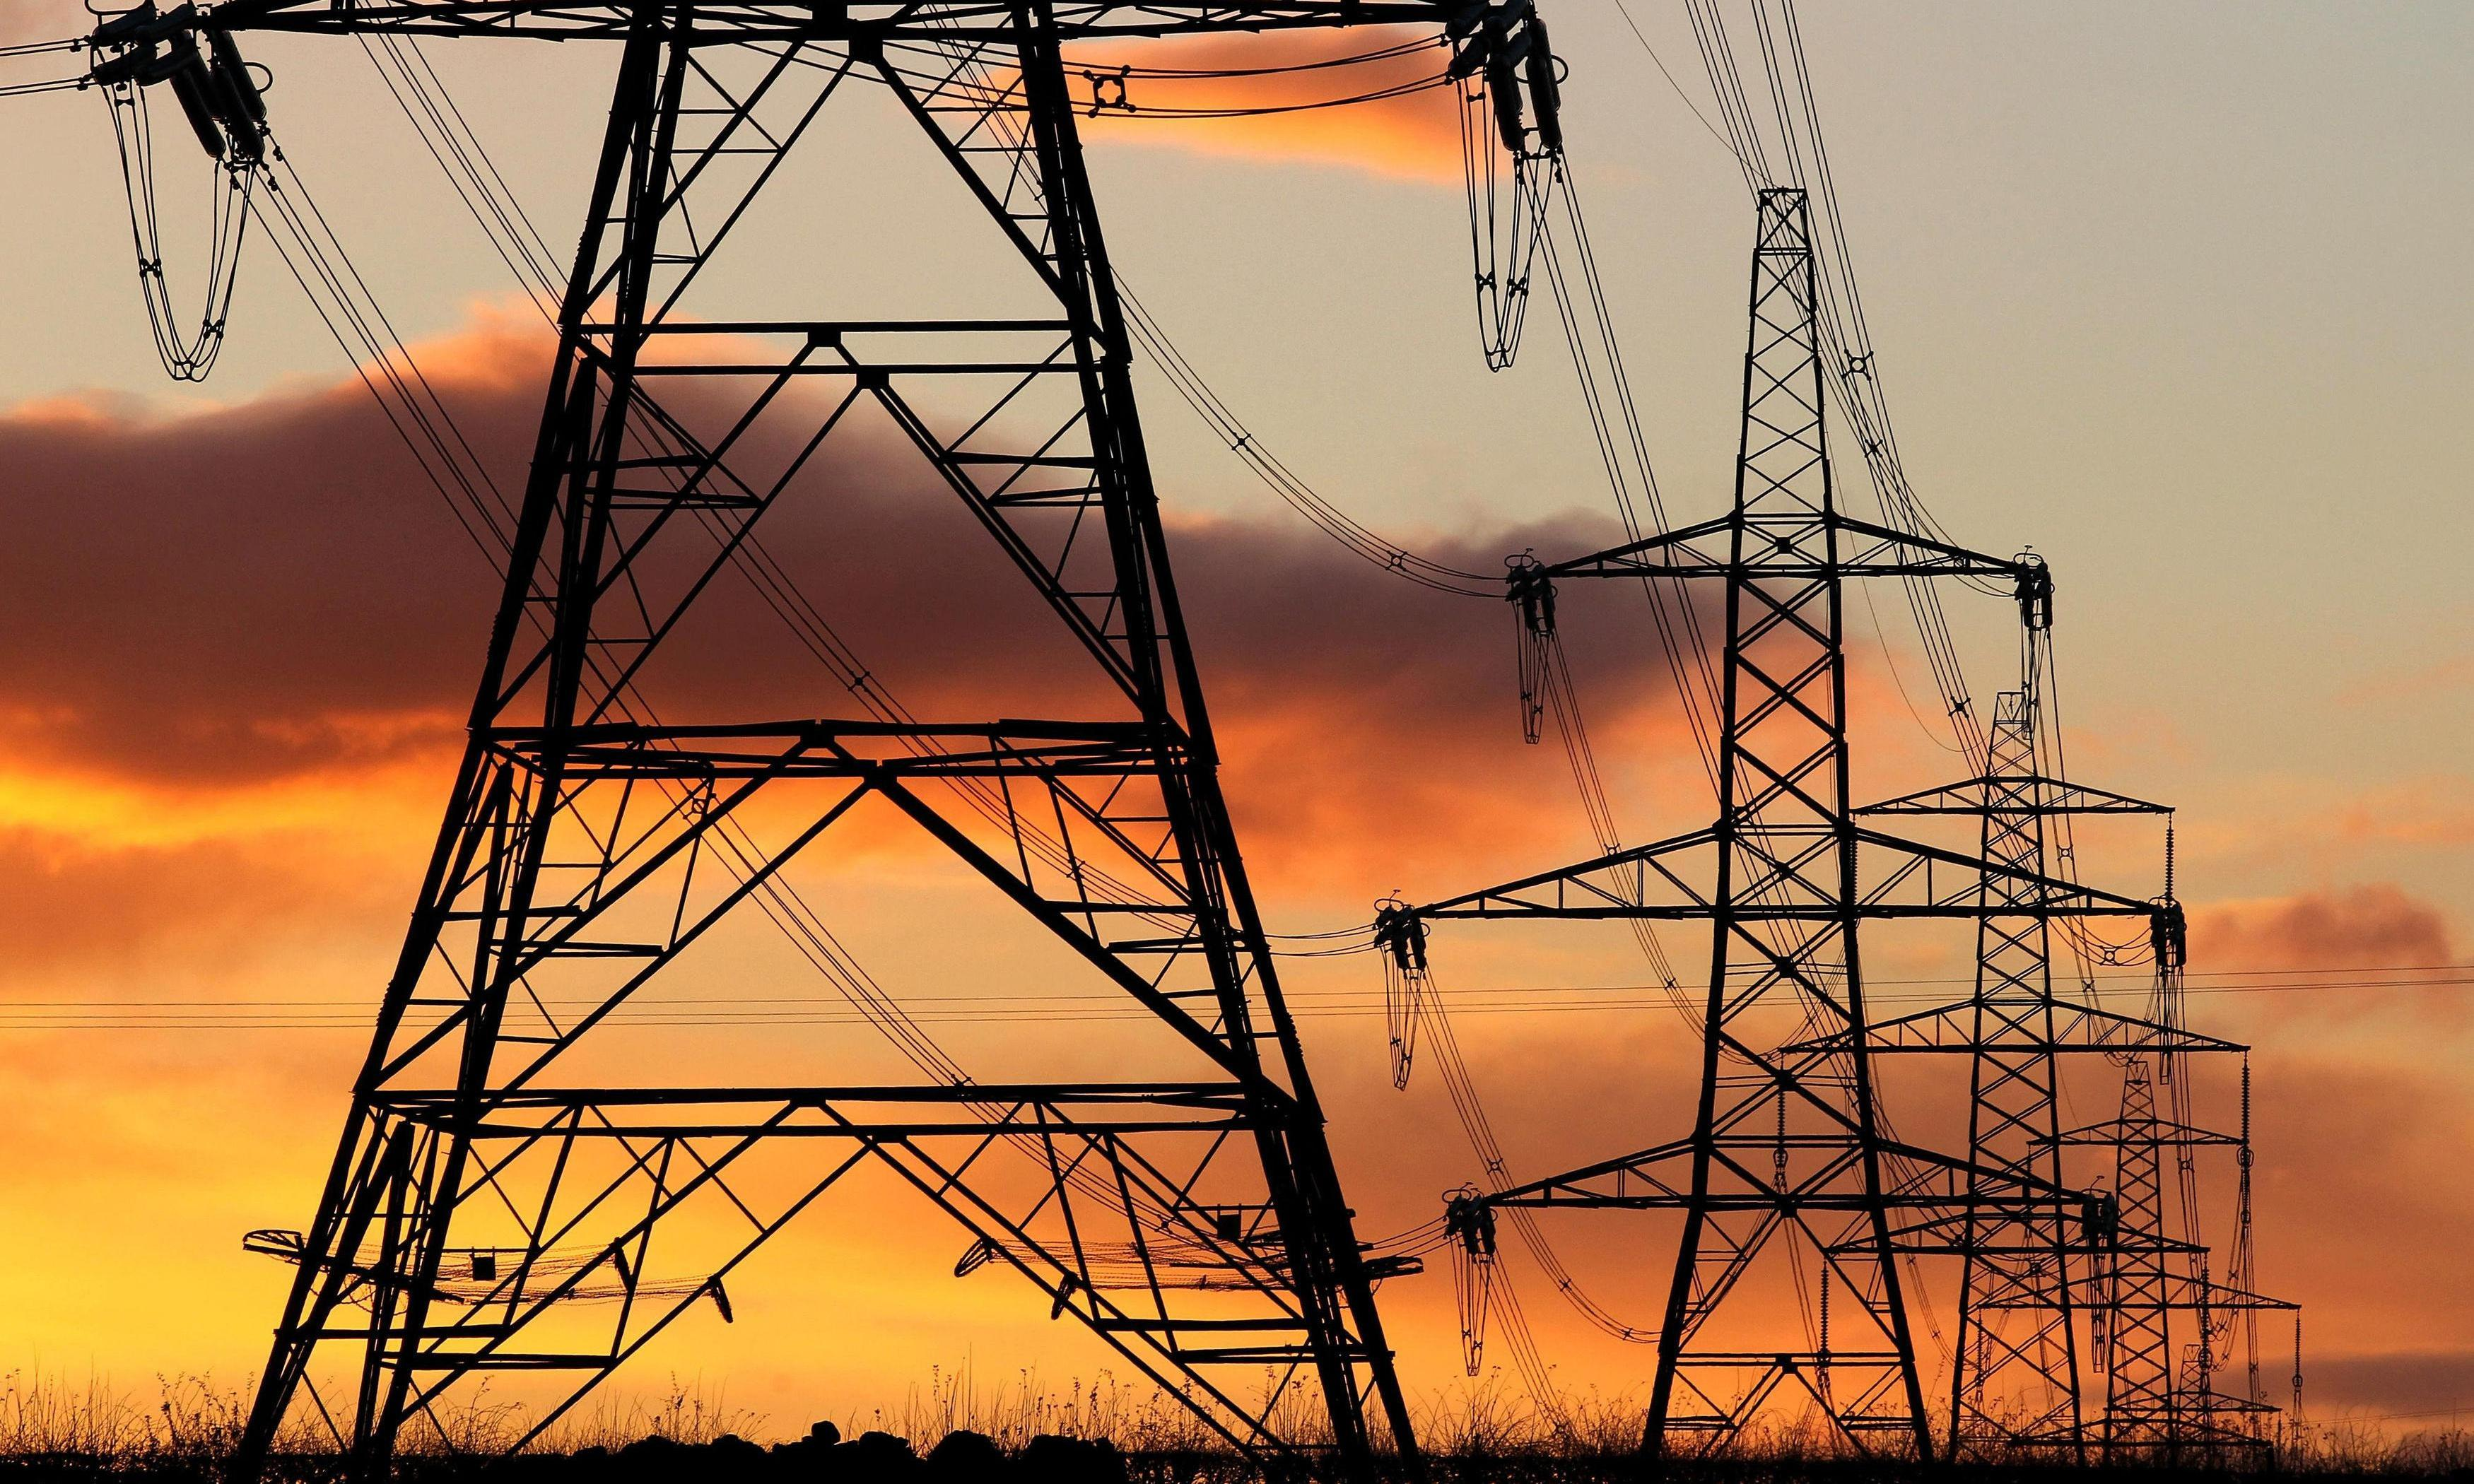 UK blackouts raise questions over private sector's right to profit from power